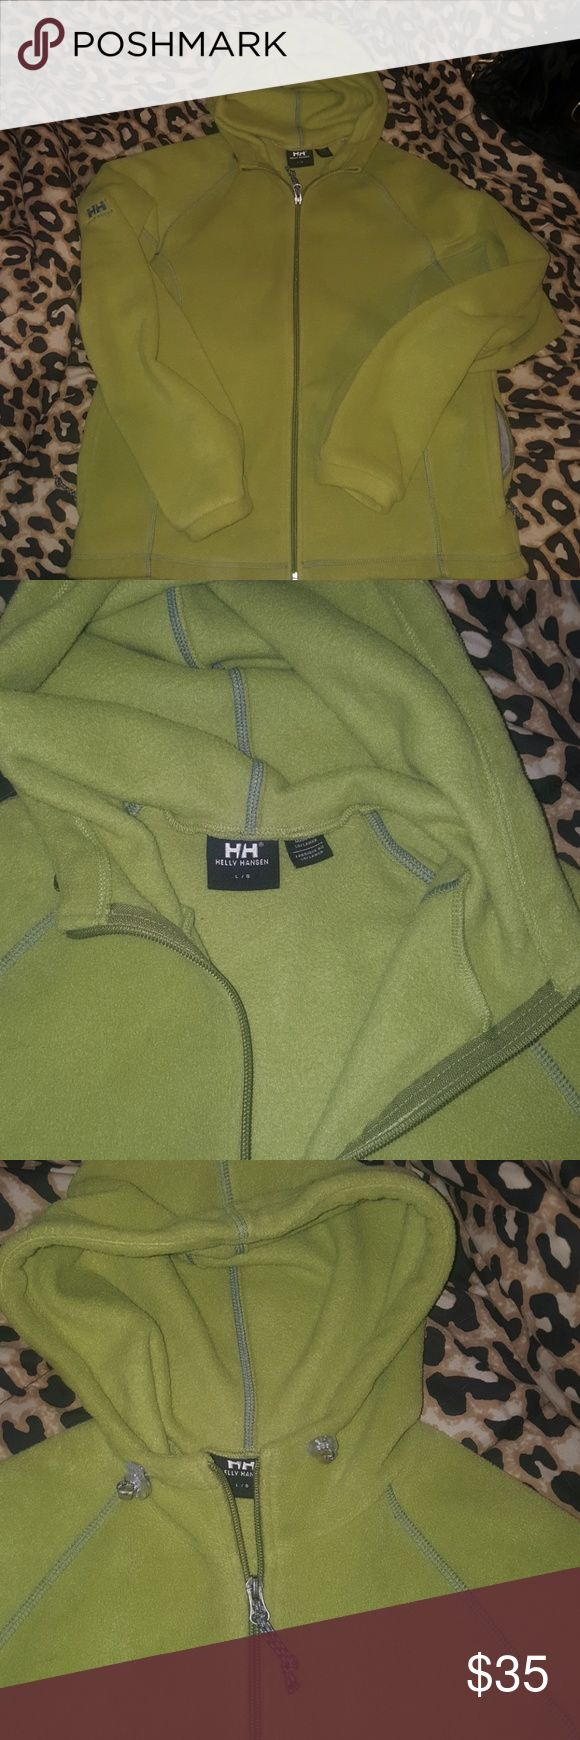 Helly Hansen Fleece Jacket Ladiea size large. Excellent condition. Worn once. Olive green with grey trim stitching. Fleece is excellent for cold weather. Its heavy and thick material compared to other fleece jackets. I love it but its the wrong size for me. Nothing is wrong with the jacket at all. Thanks for stopping by! Helly Hansen Tops Sweatshirts & Hoodies